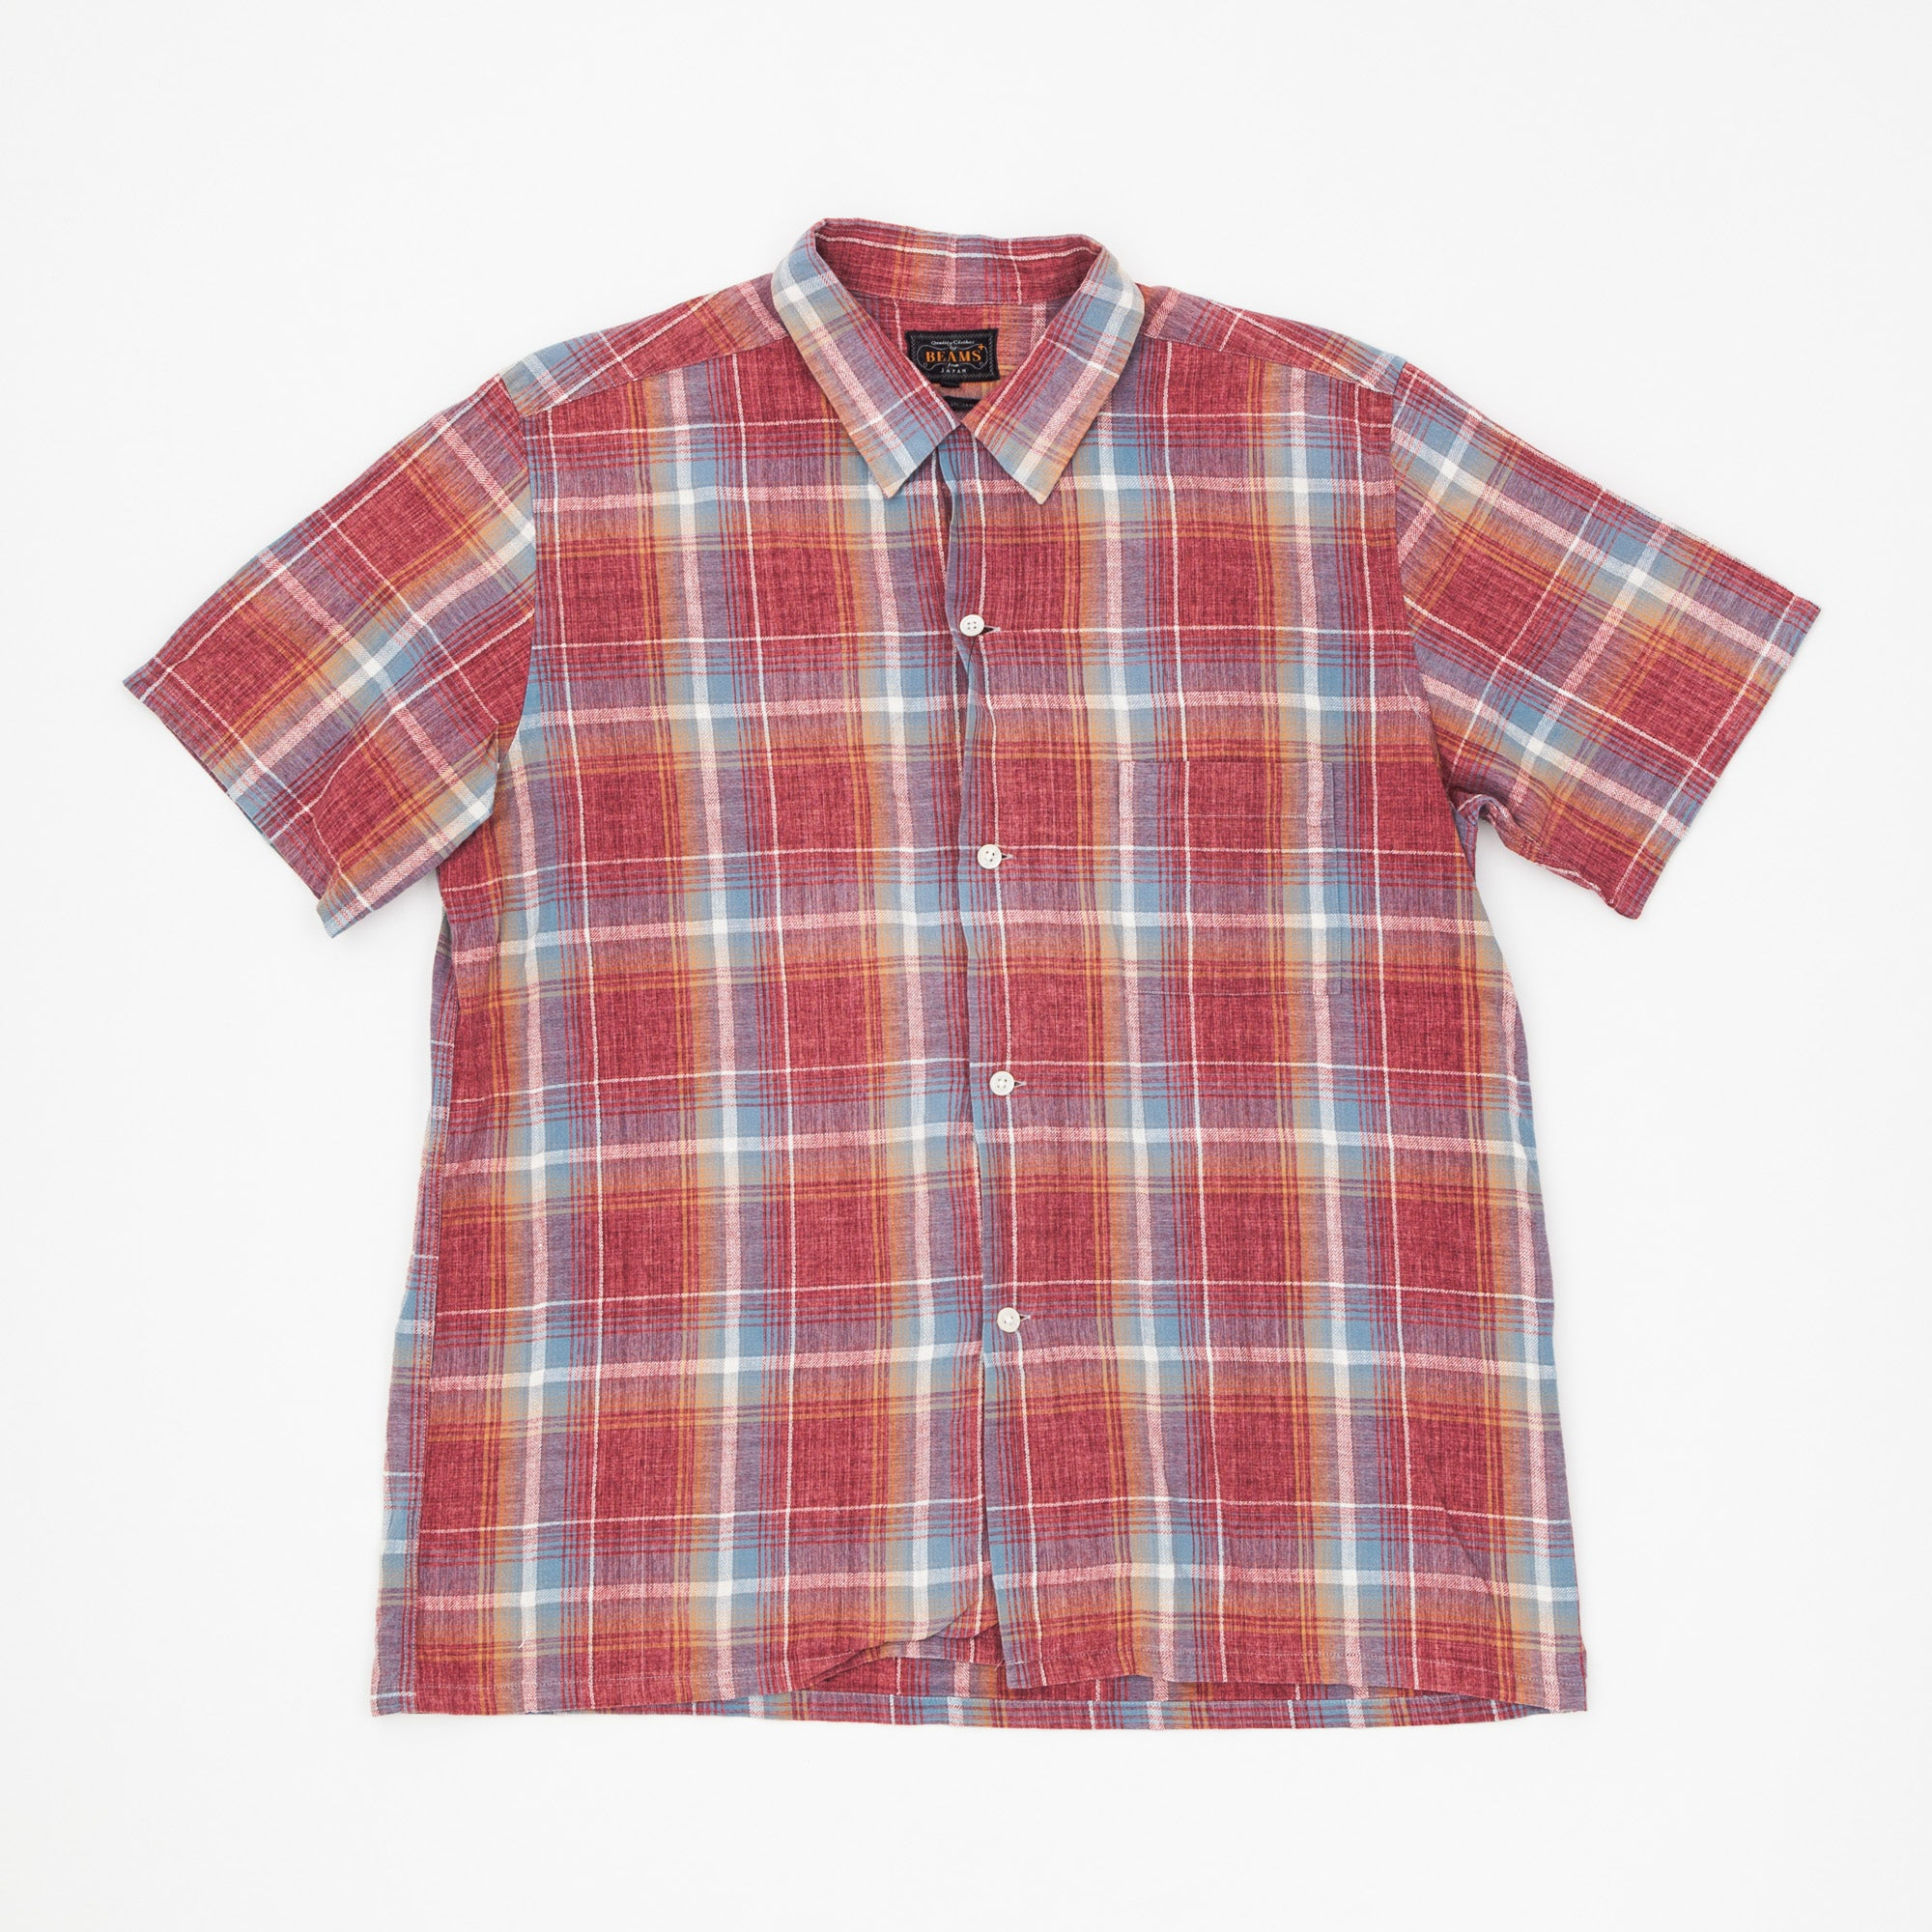 SS Checked Shirt